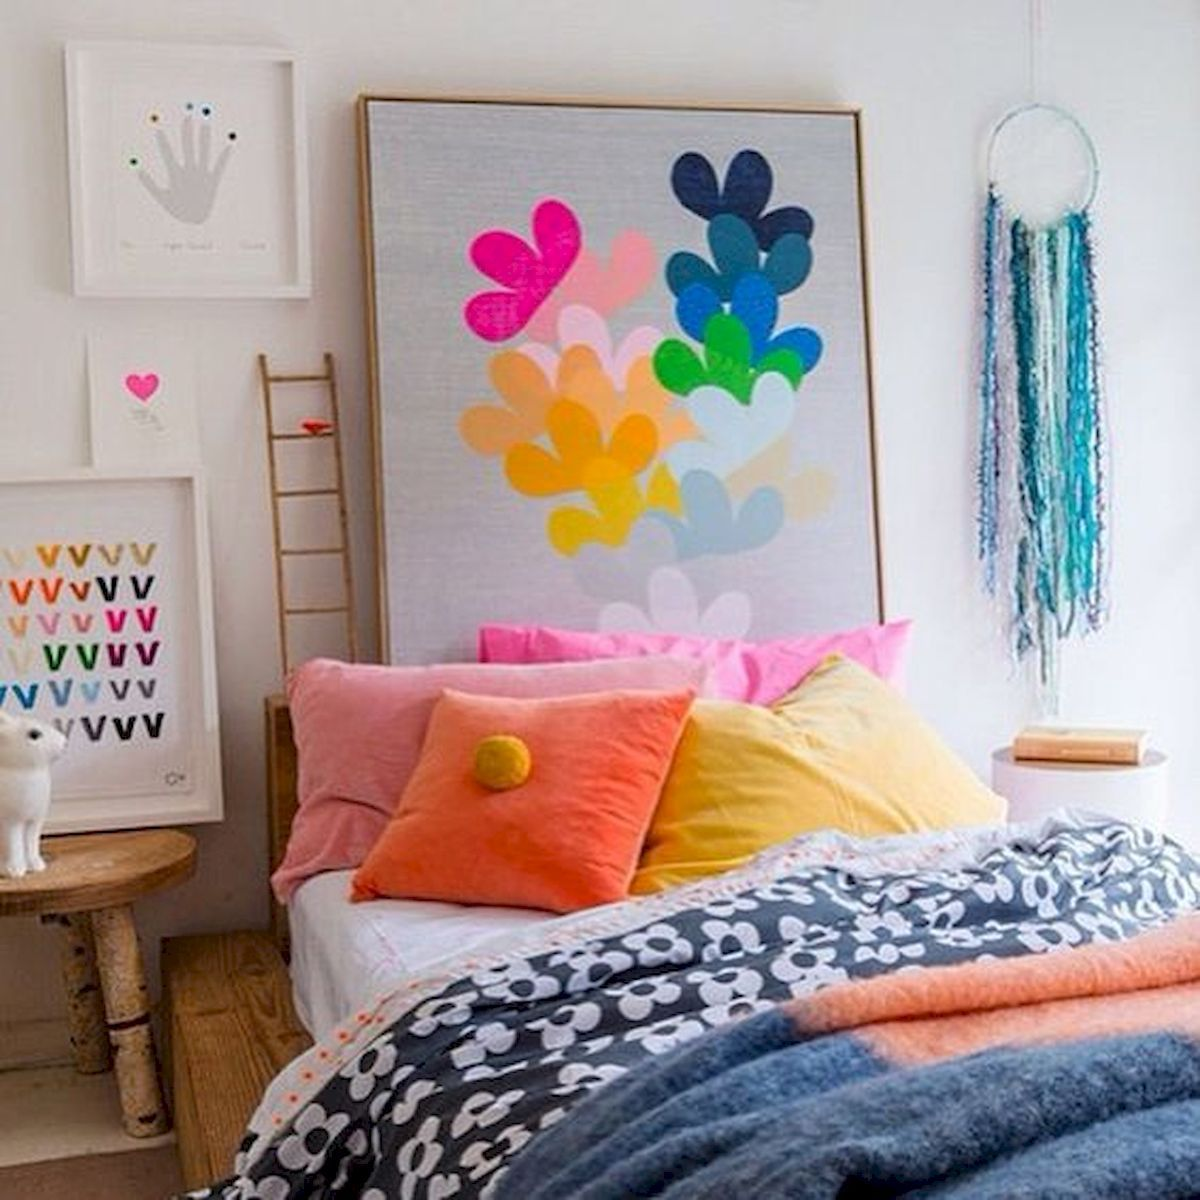 70+ Amazing Colorful Bedroom Decor Ideas And Remodel for Summer Project images